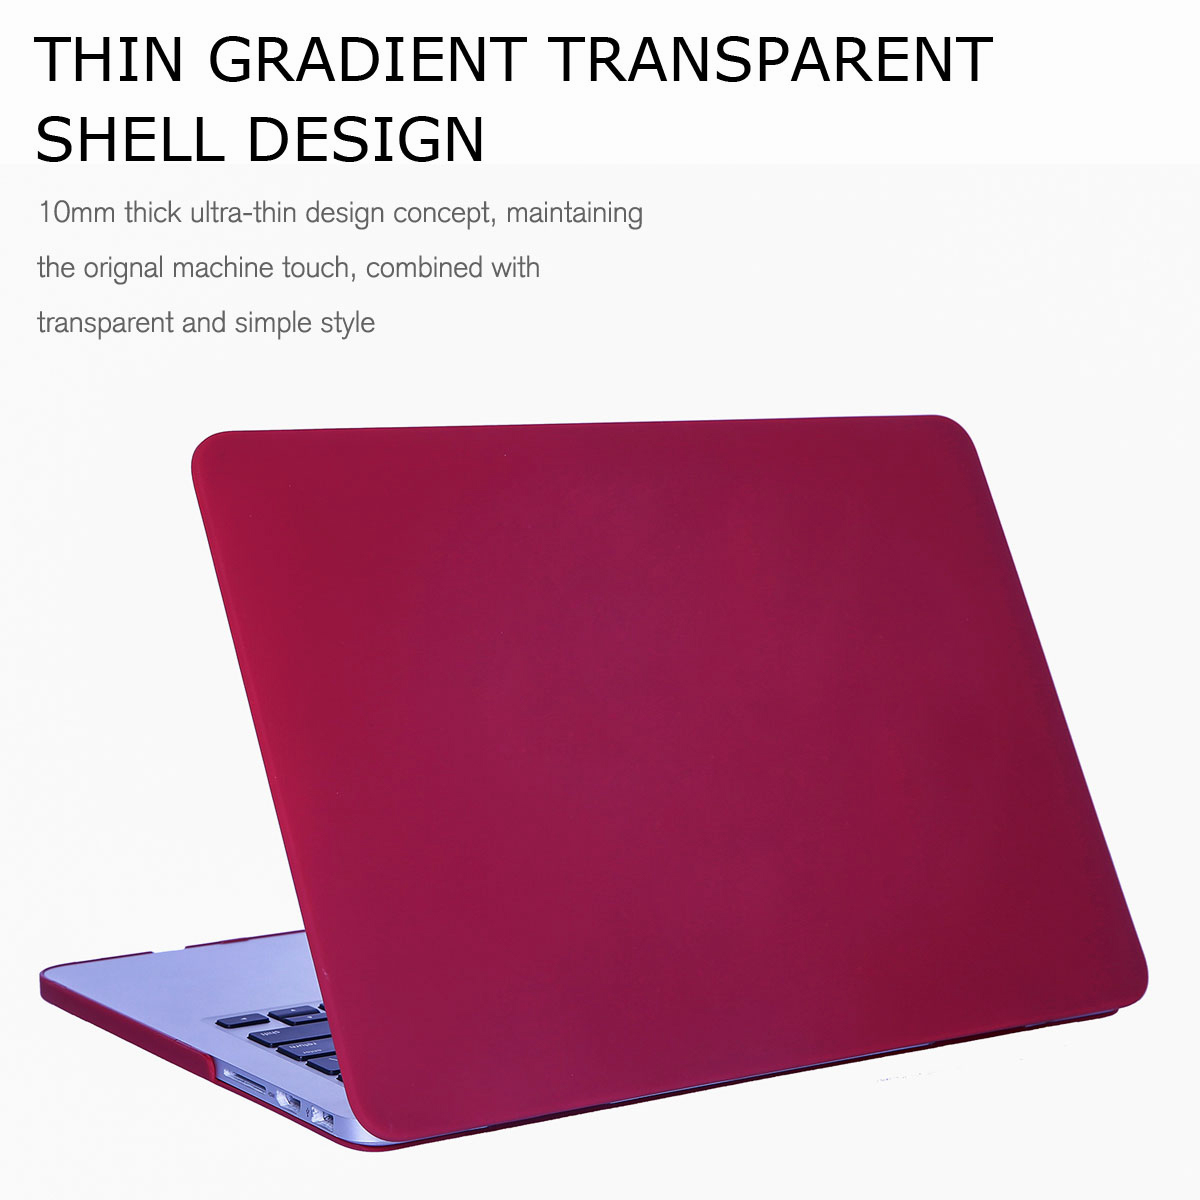 Matte-Rubberized-Hard-Case-Cover-Shell-For-Macbook-Pro-Retina-12-039-039-13-039-039-15-Inch thumbnail 51